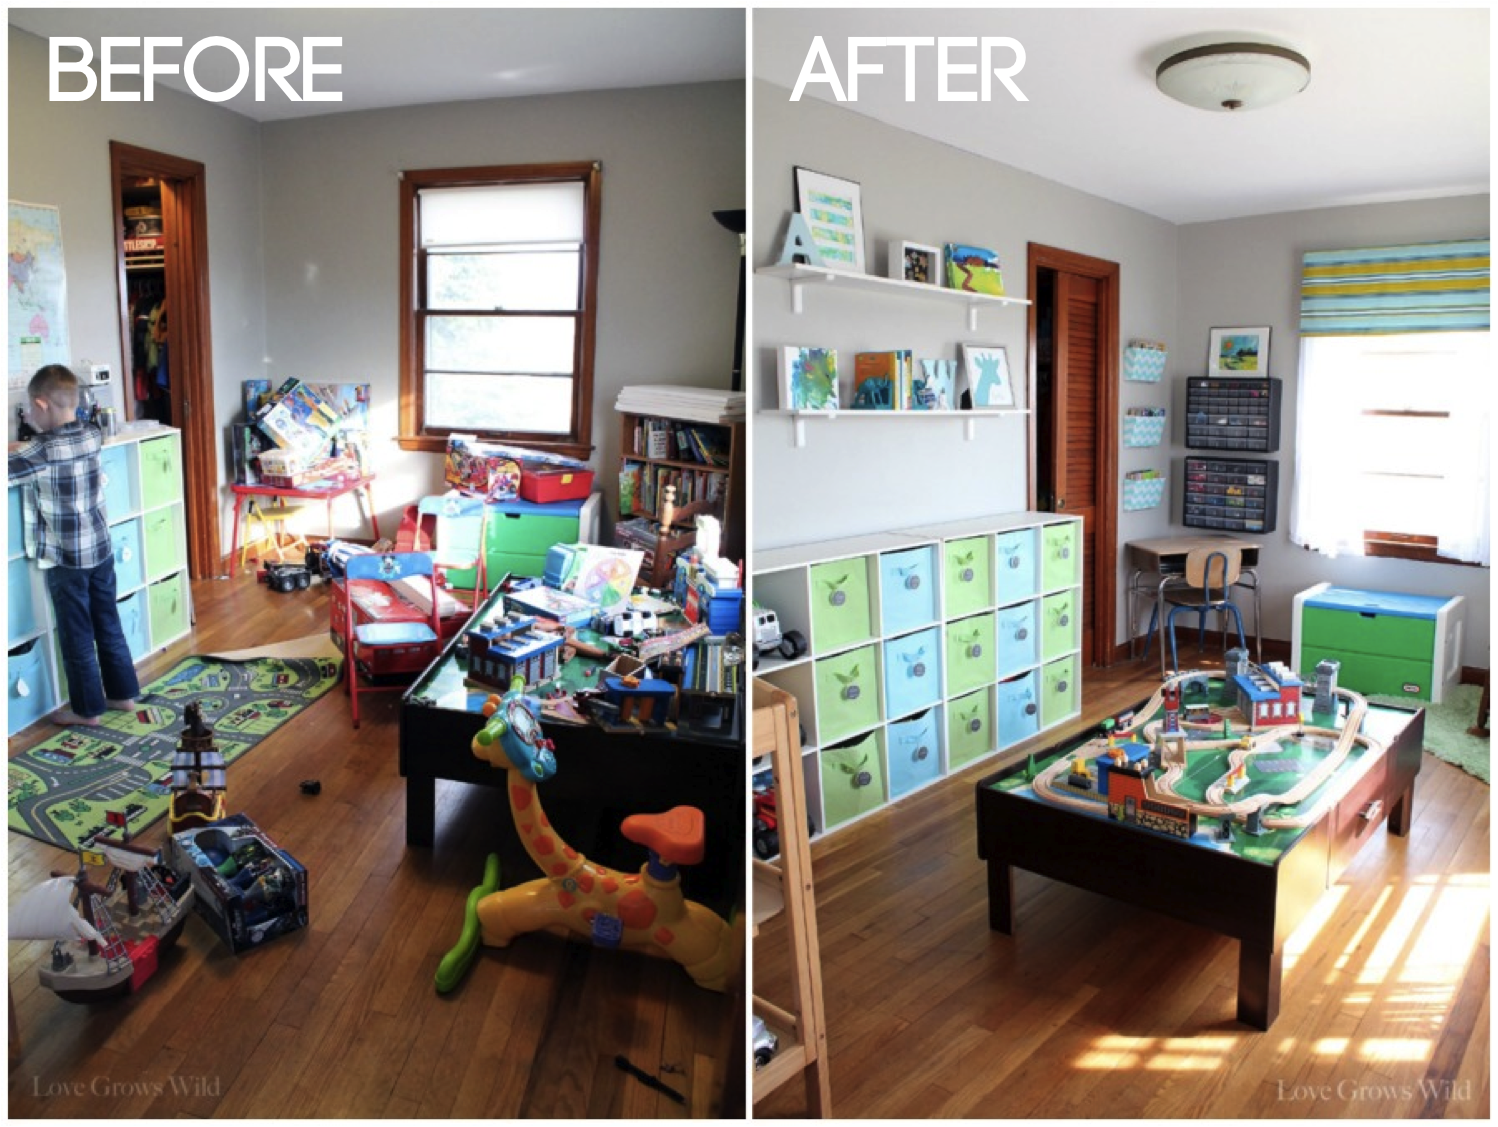 Uncategorized How To Make Your Room More Organized playroom makeover room reveal playrooms kids s and organizing with tips decor ideas